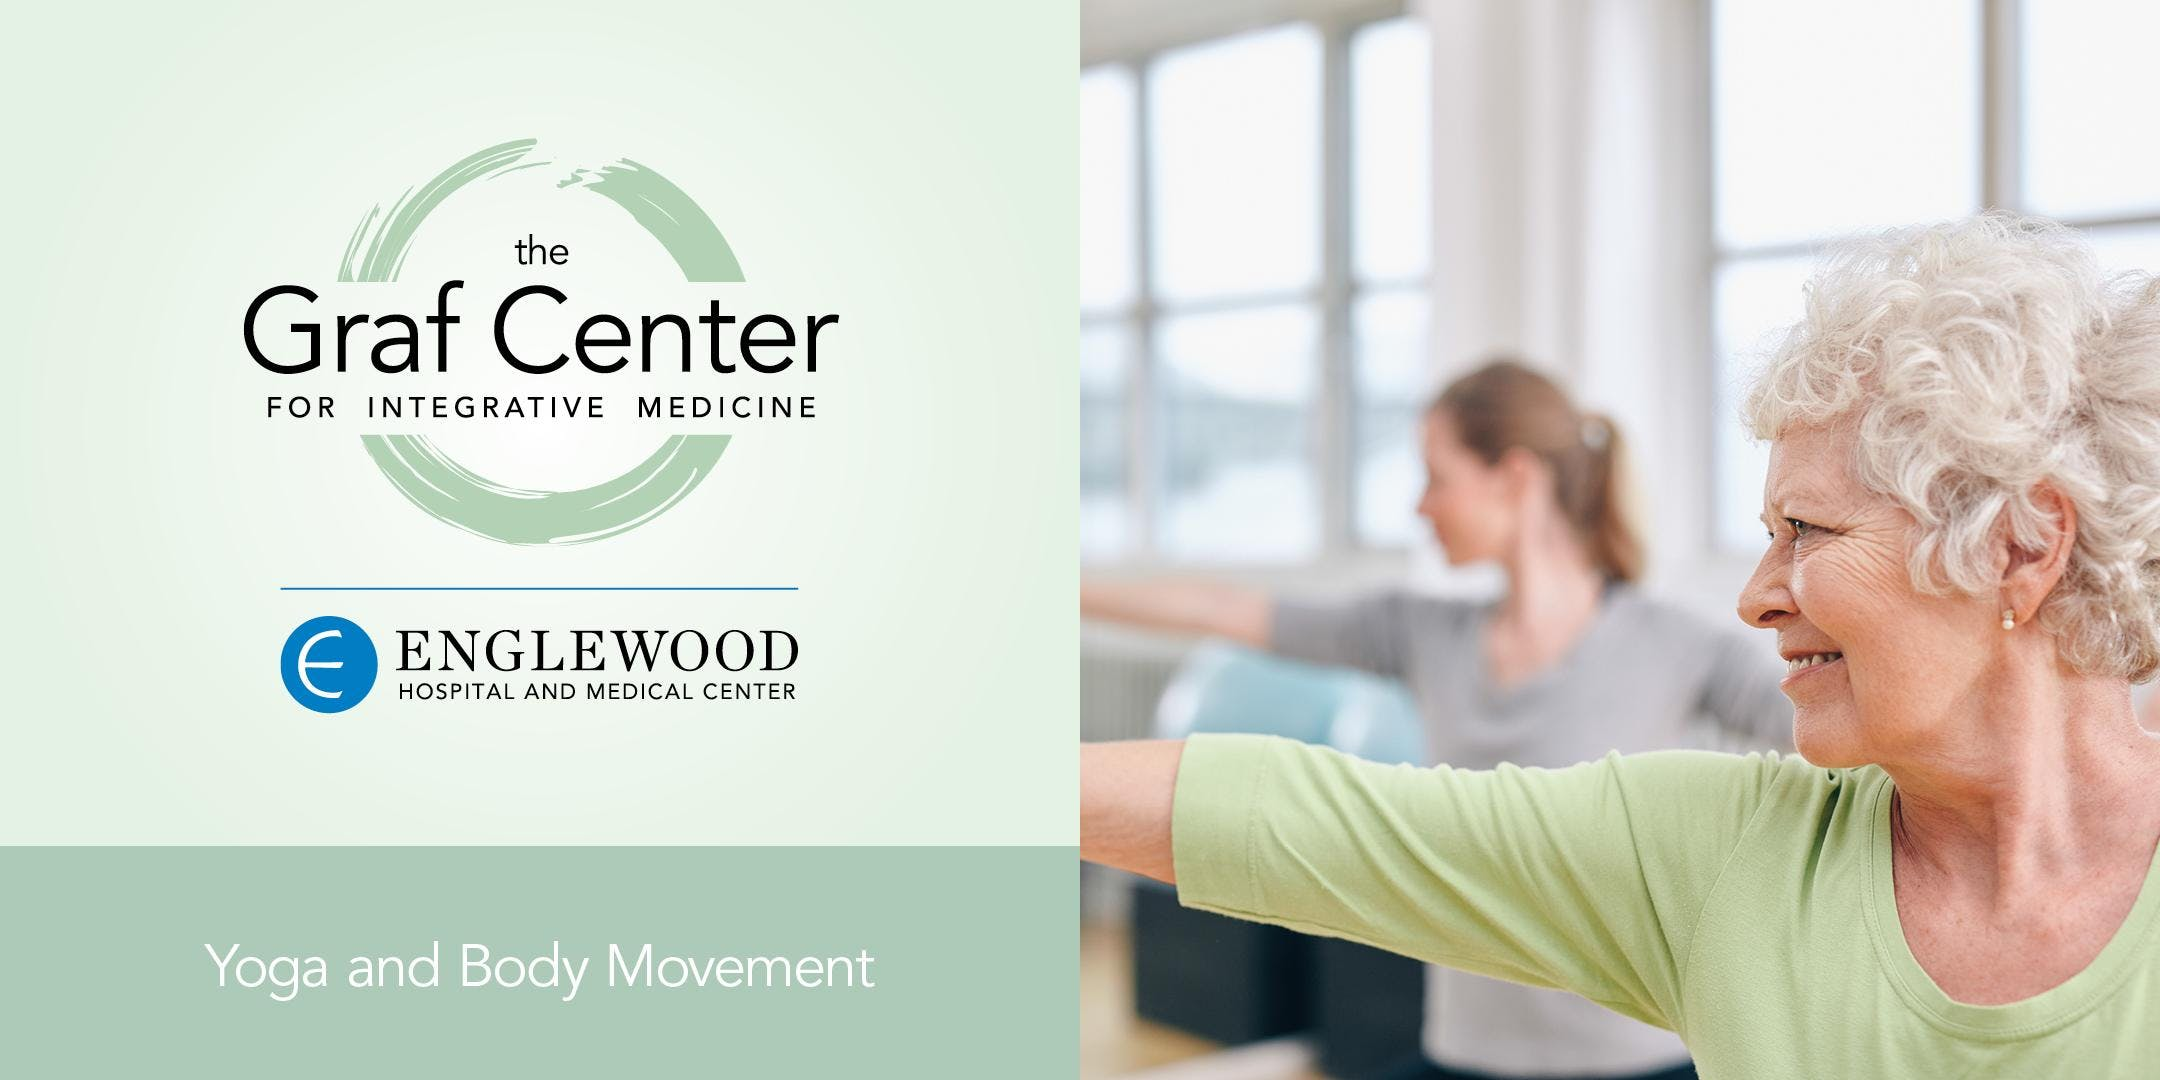 More info: Yoga for Cancer